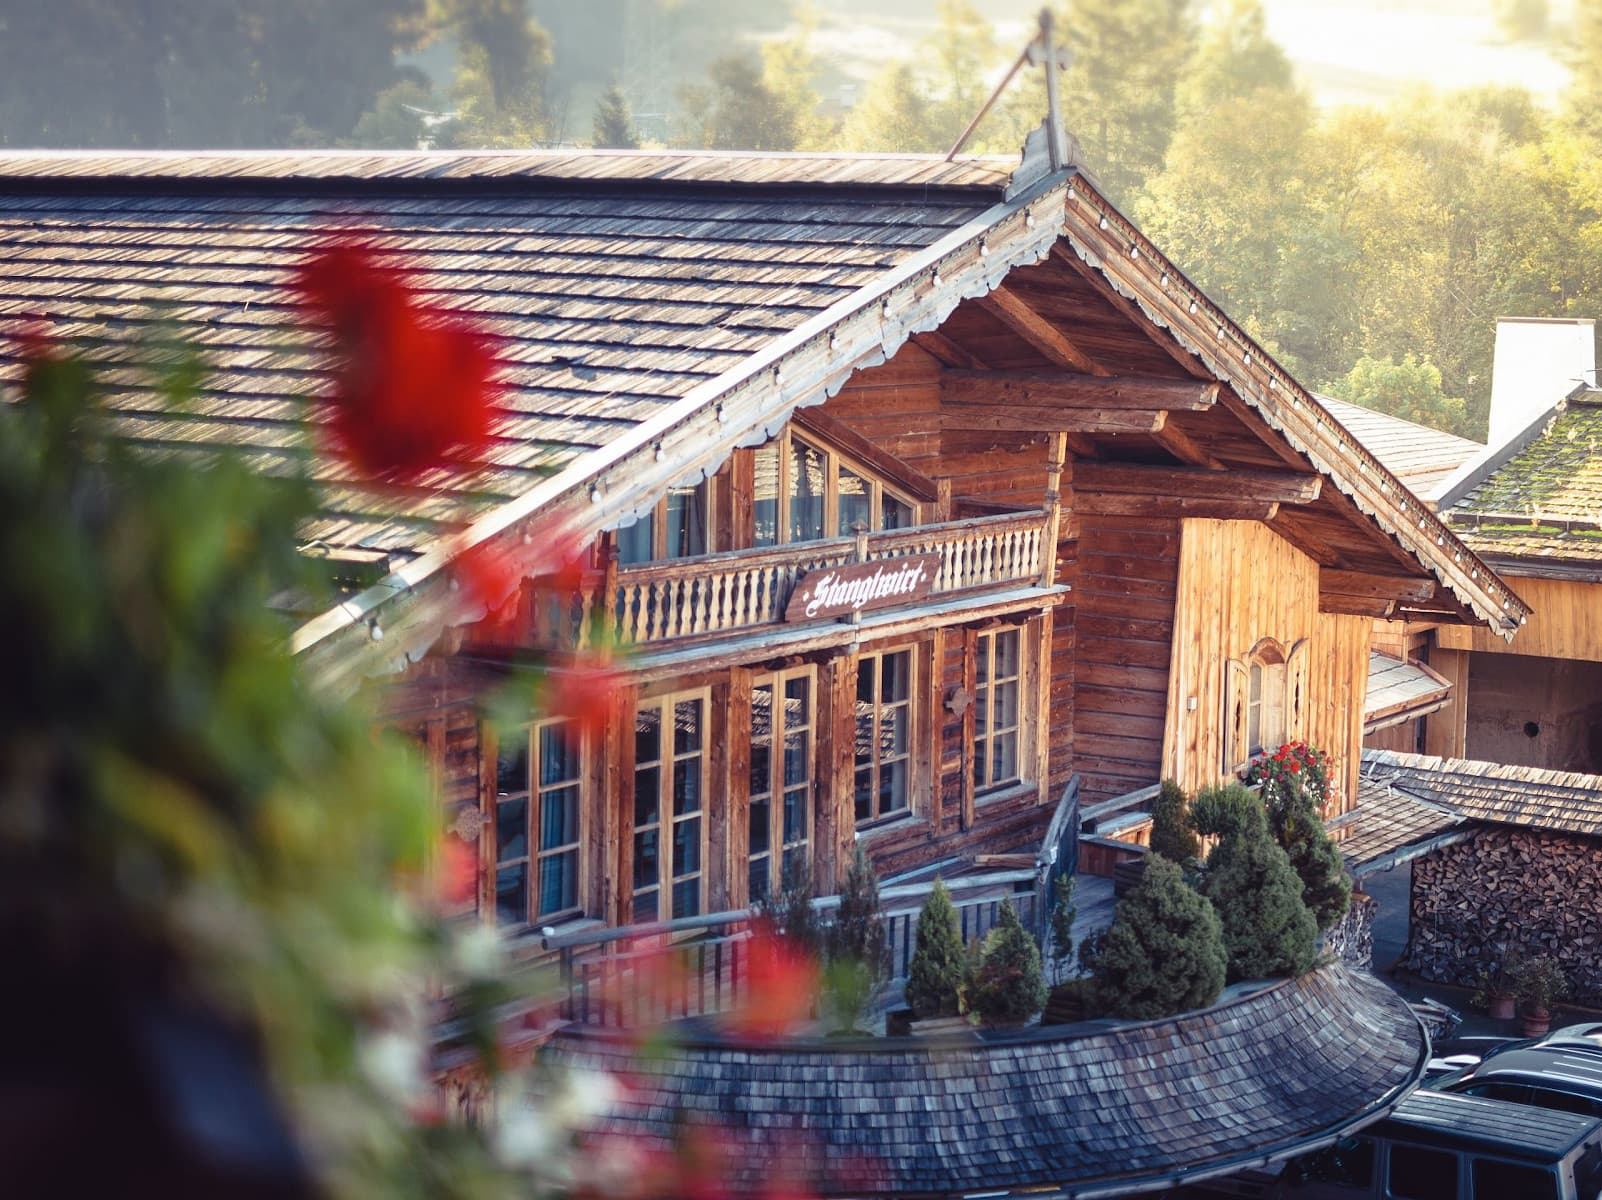 Stanglwirt Hotel - one of the best tennis resorts for your tennis holidays in Austria